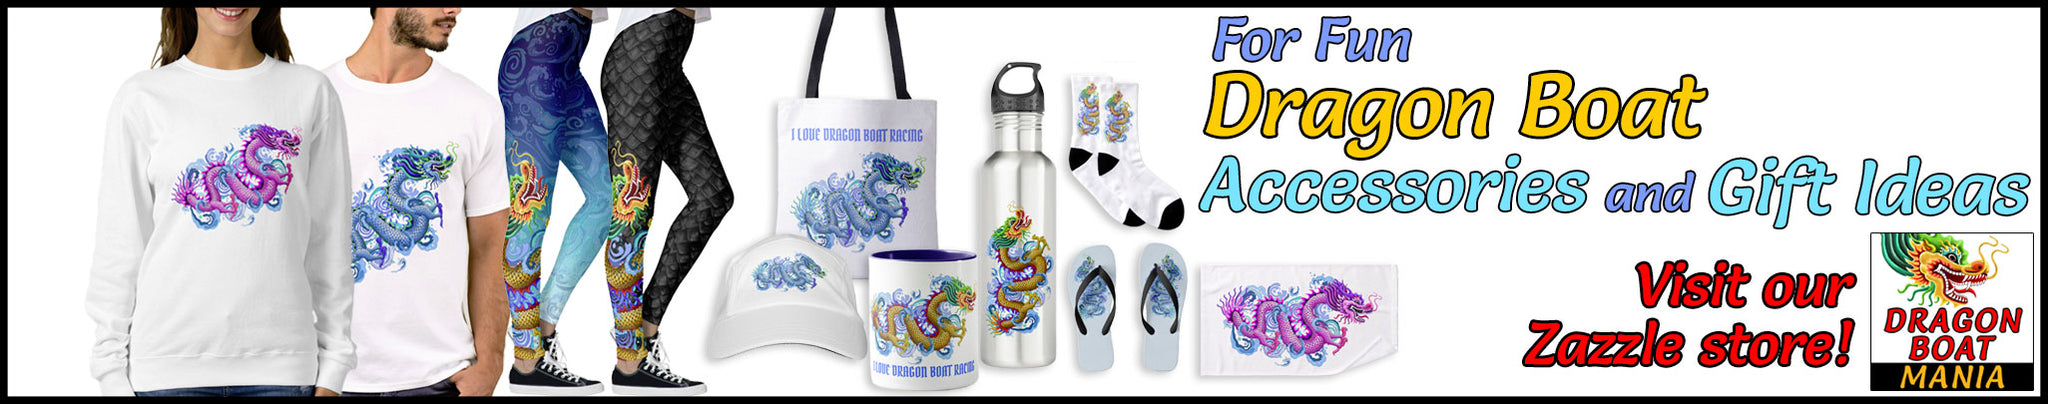 Dragon Boat Accessories and Gift Ideas.